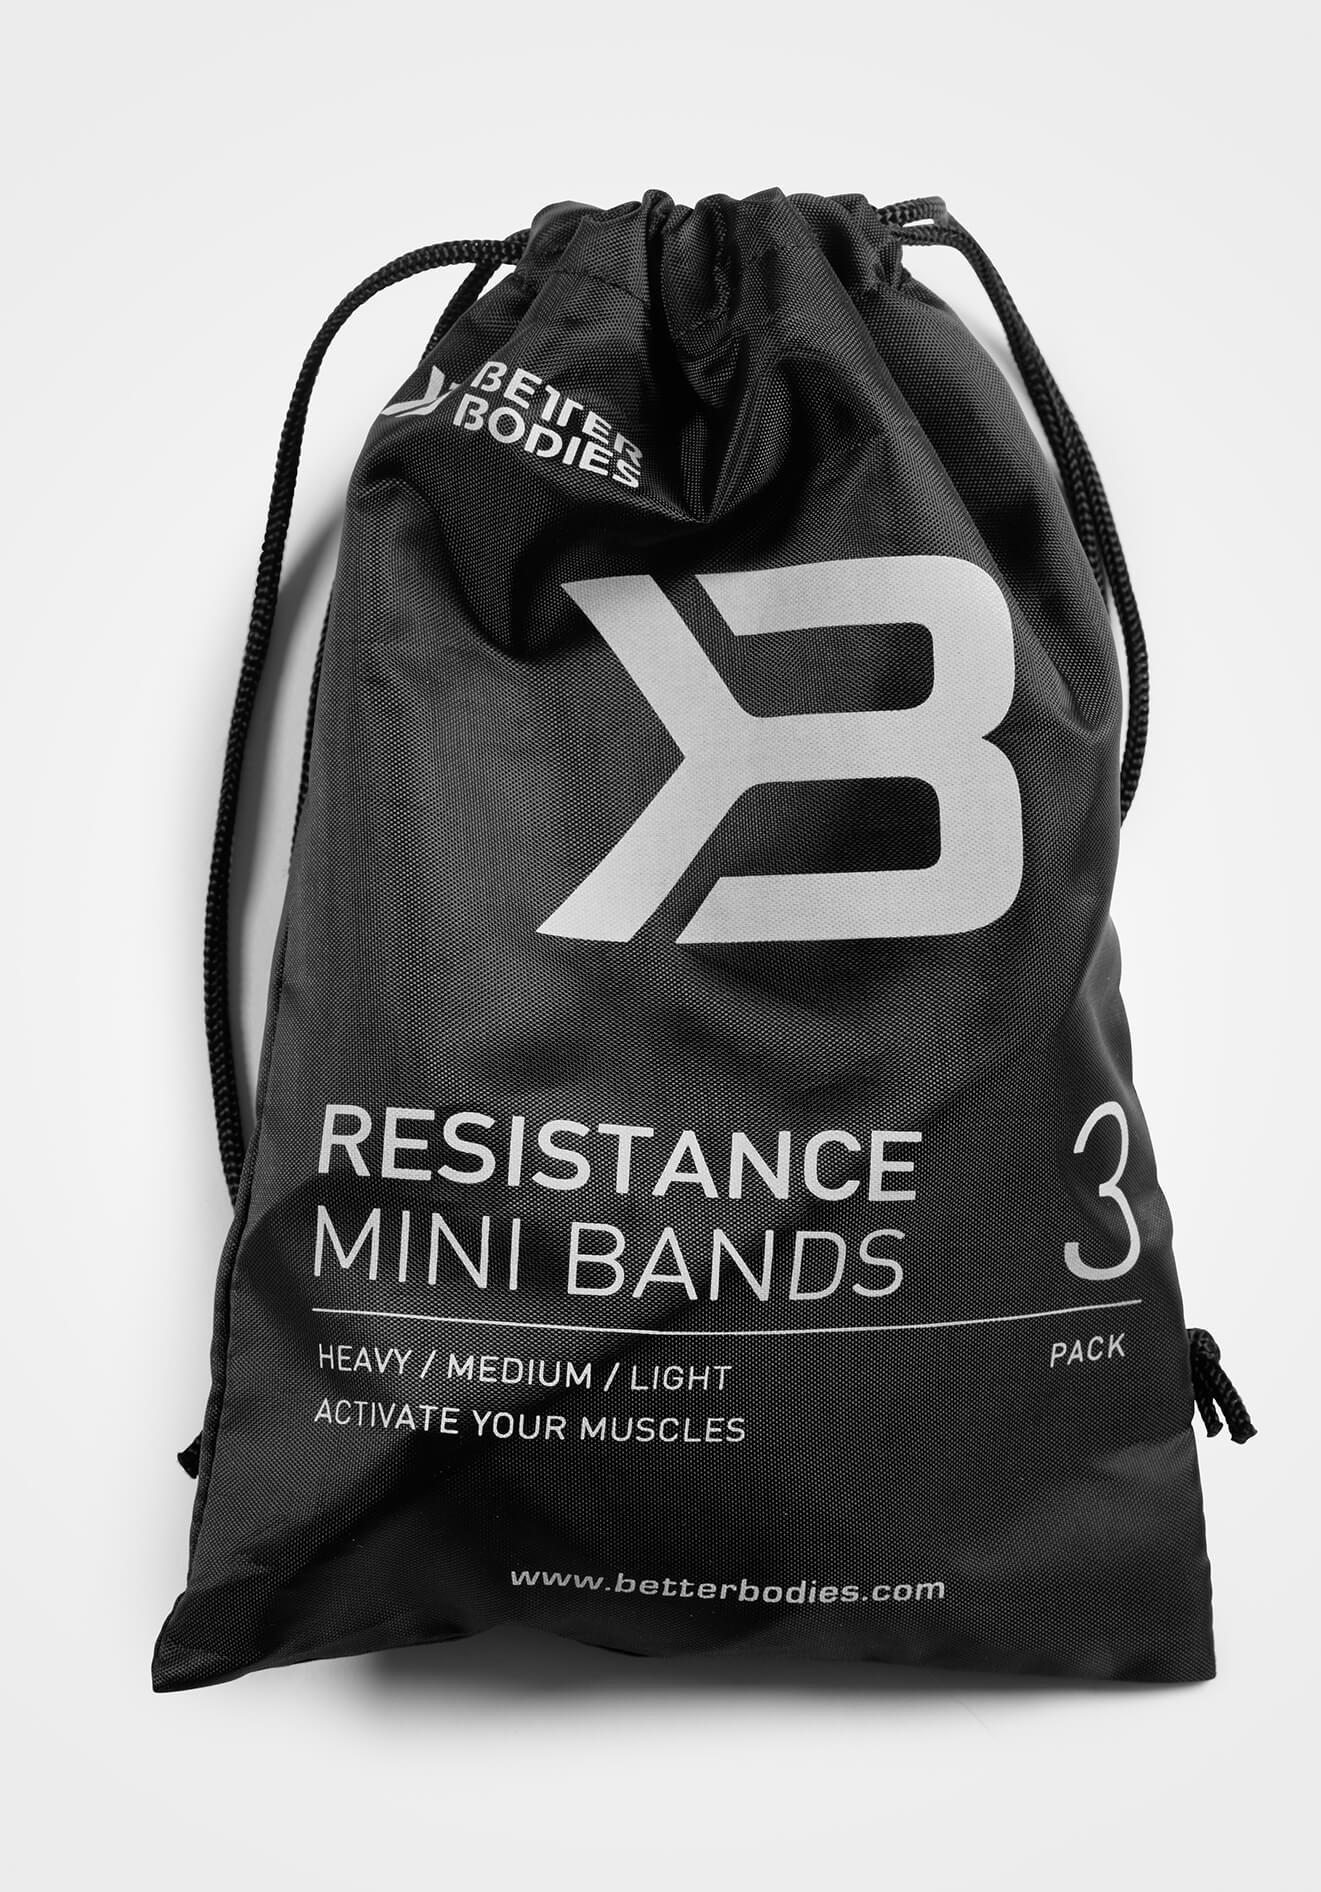 Resistance Mini Band, 3-Pack